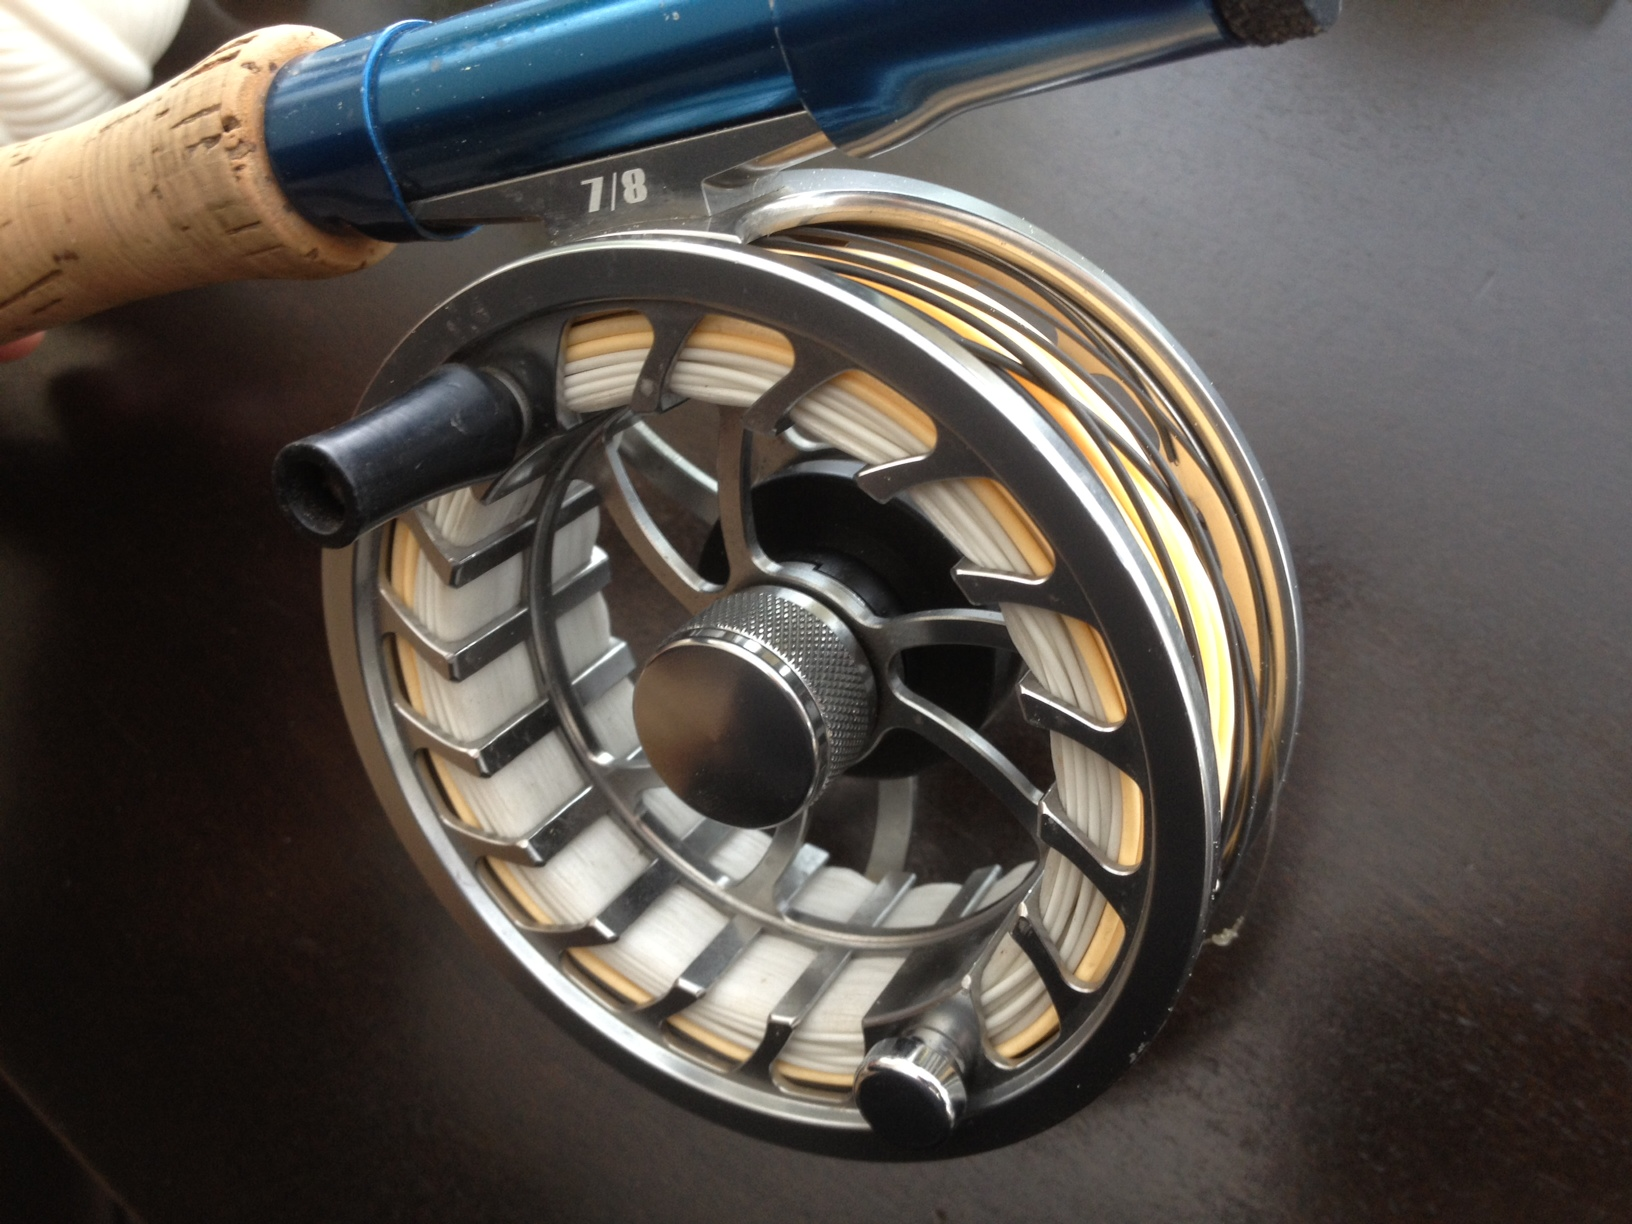 forged fly fishing - 7/8wt requiem reel gear review - the fishing, Fishing Reels